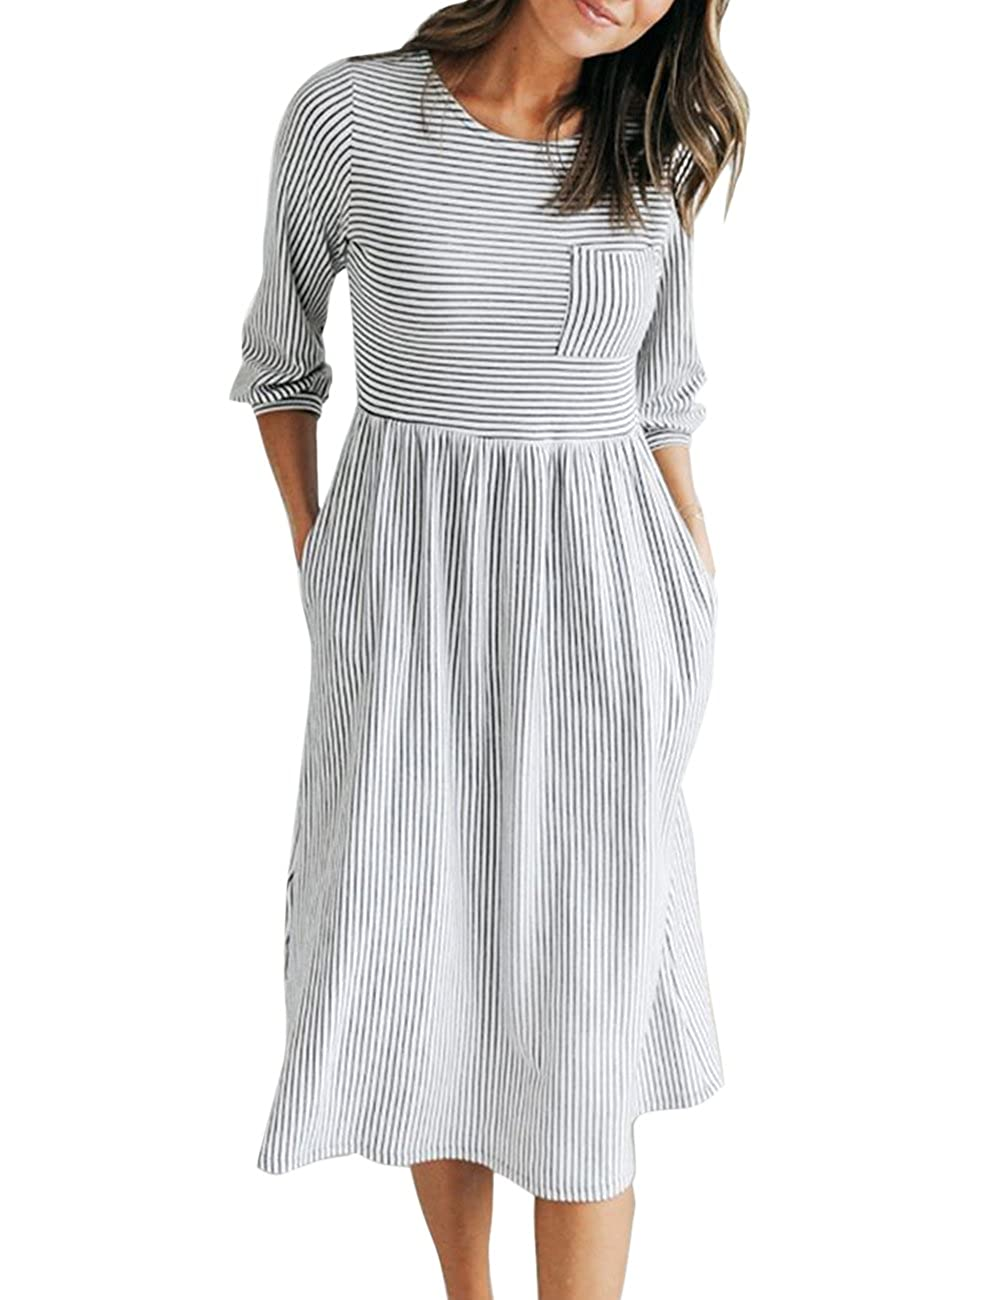 dad1e7c927b69 MEROKEETY Women's 3/4 Balloon Sleeve Striped High Waist T Shirt Midi Dress  with Pockets at Amazon Women's Clothing store: